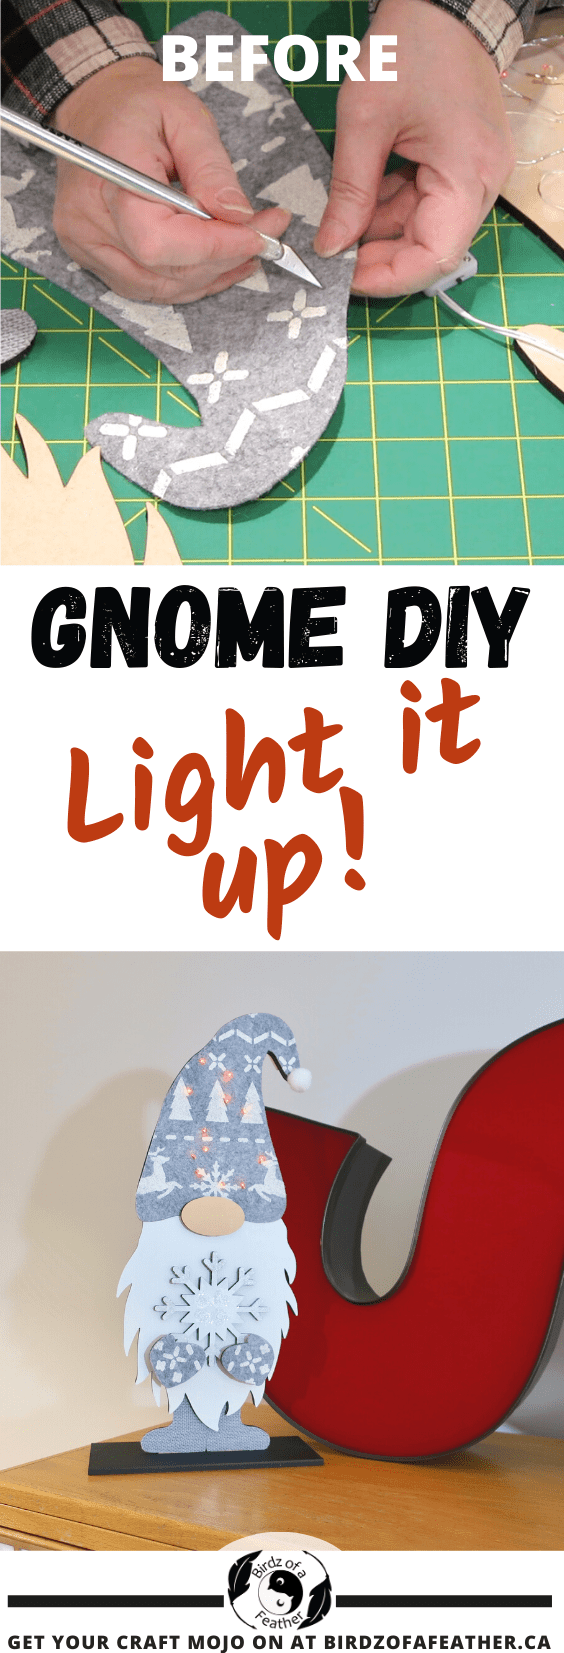 Every time I see a gnome, I tell myself I have to get around to making one! Dress up your Christmas decor with this gnome DIY; it lights up! Birdz of a Feather | DIY gnome ideas | Easy DIY Christmas gnome tutorial | DIY Christmas Gnomes | how to make a large gnome | Christmas gnome | christmas gnome diy | christmas gnome decoration | christmas gnome decor | how to make a Christmas gnome | gnomes DIY how to make | gnomes crafts | gnomes tutorial | gnome hat | gnome kits | kim and garrett make it